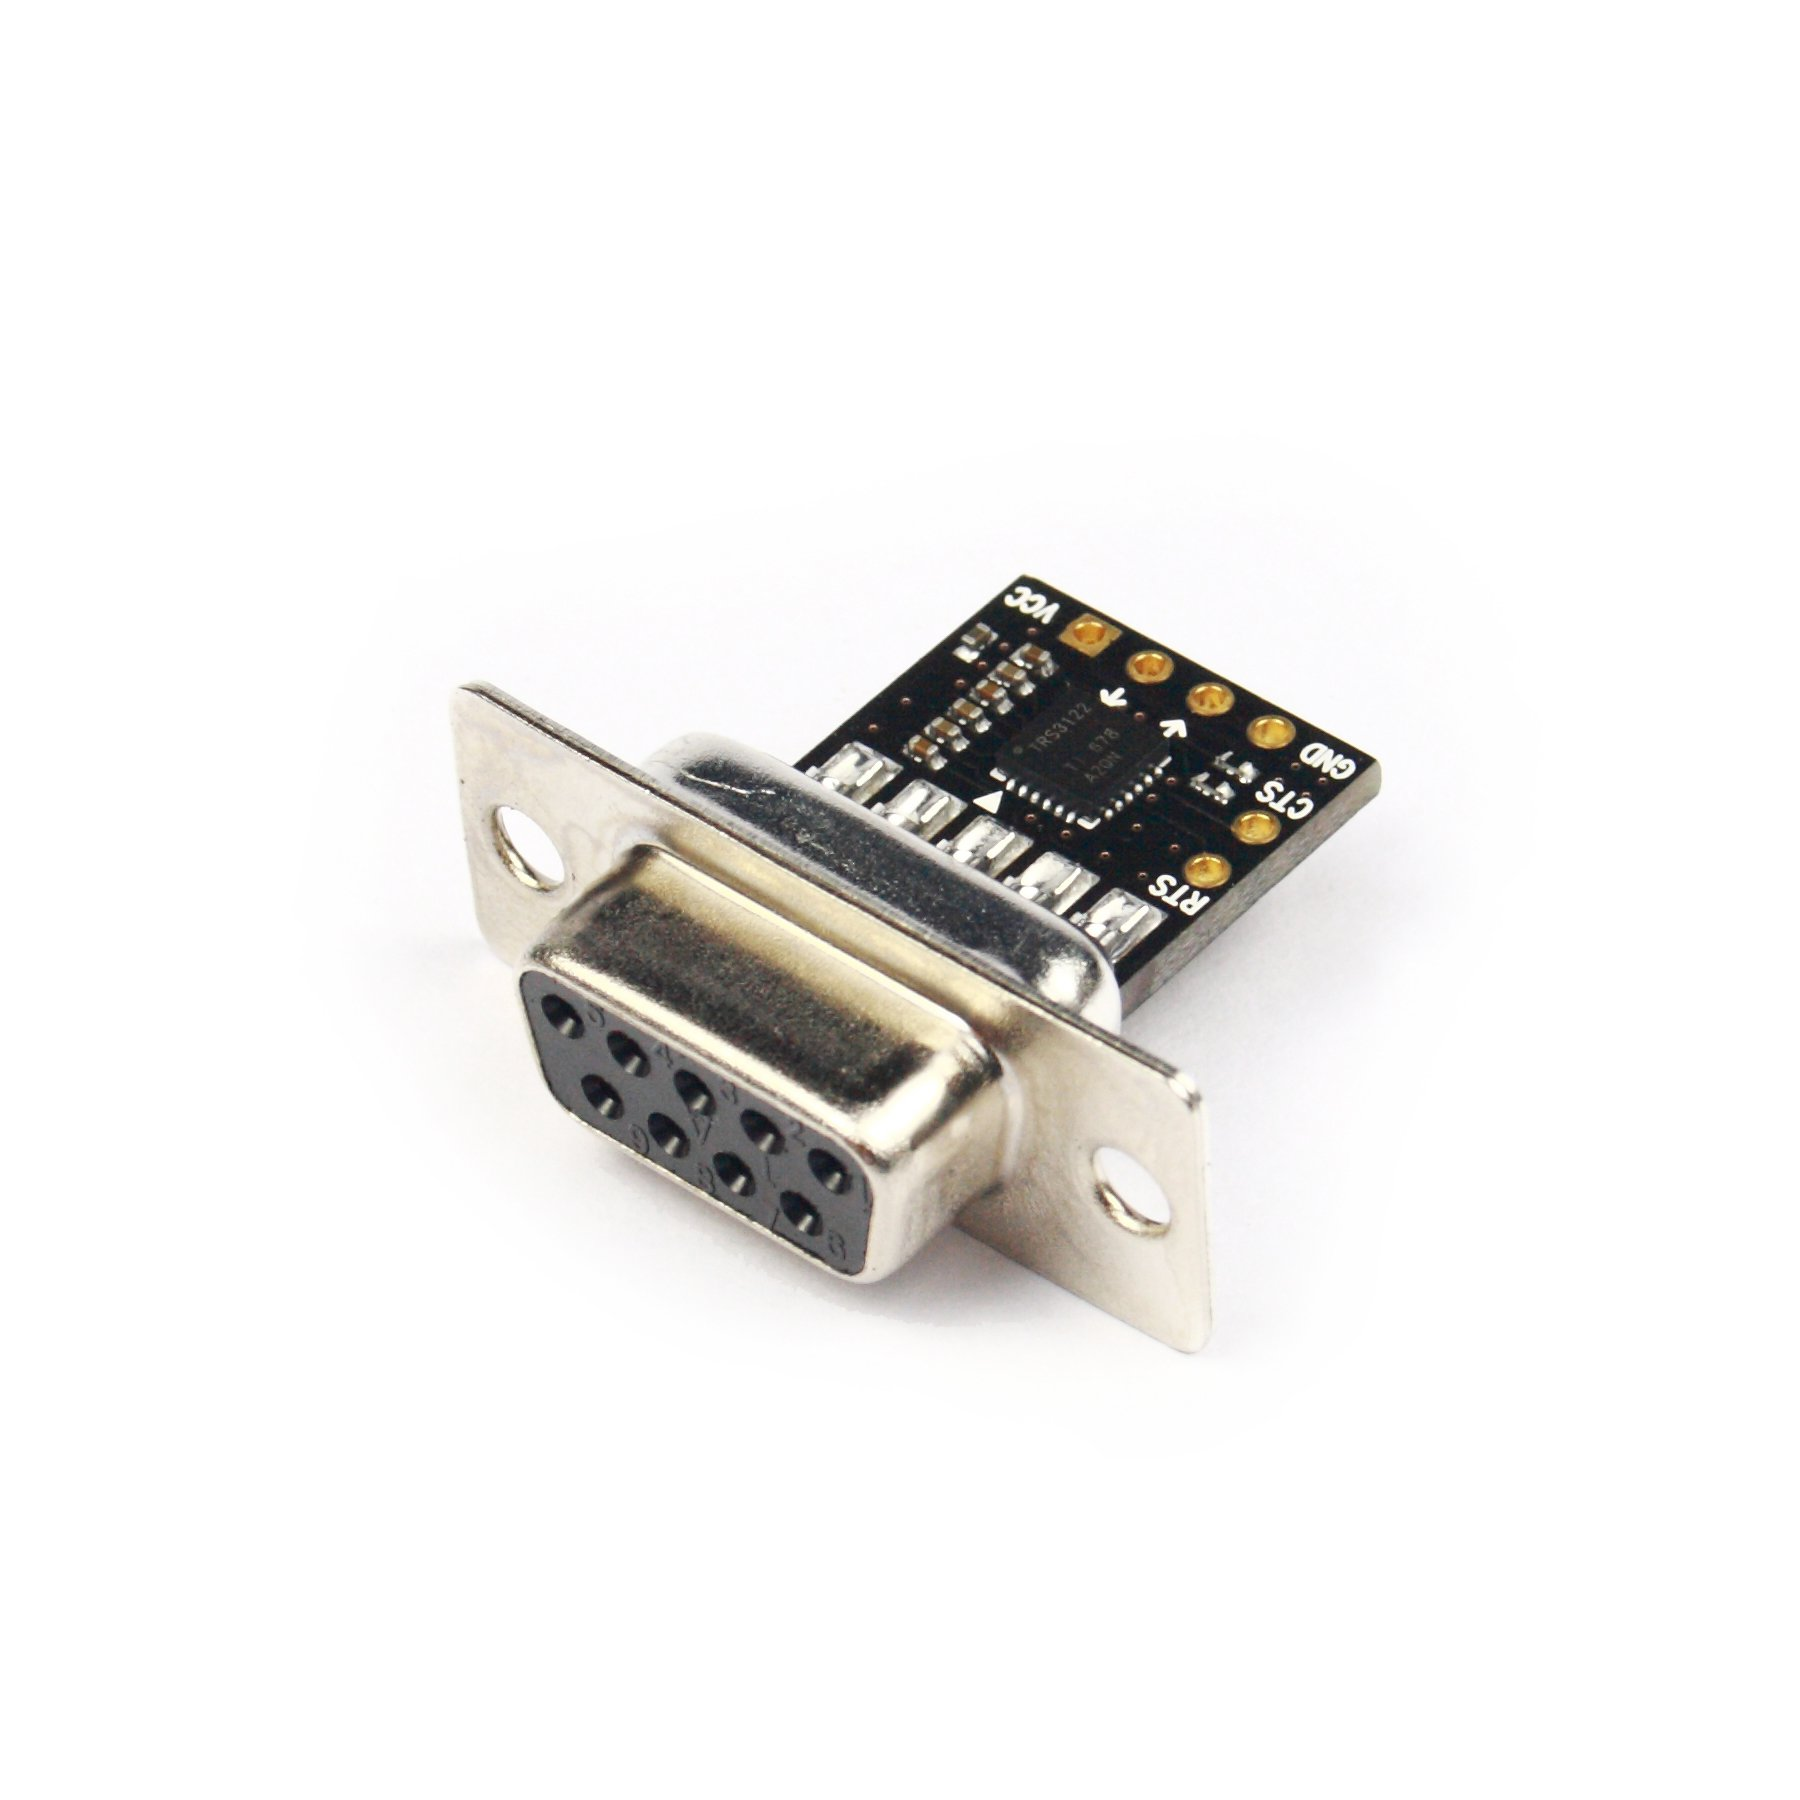 Ultra Compact RS232 to TTL Converter with Female DB9 (1.8V 3.3V 5V, up to 1Mbps)